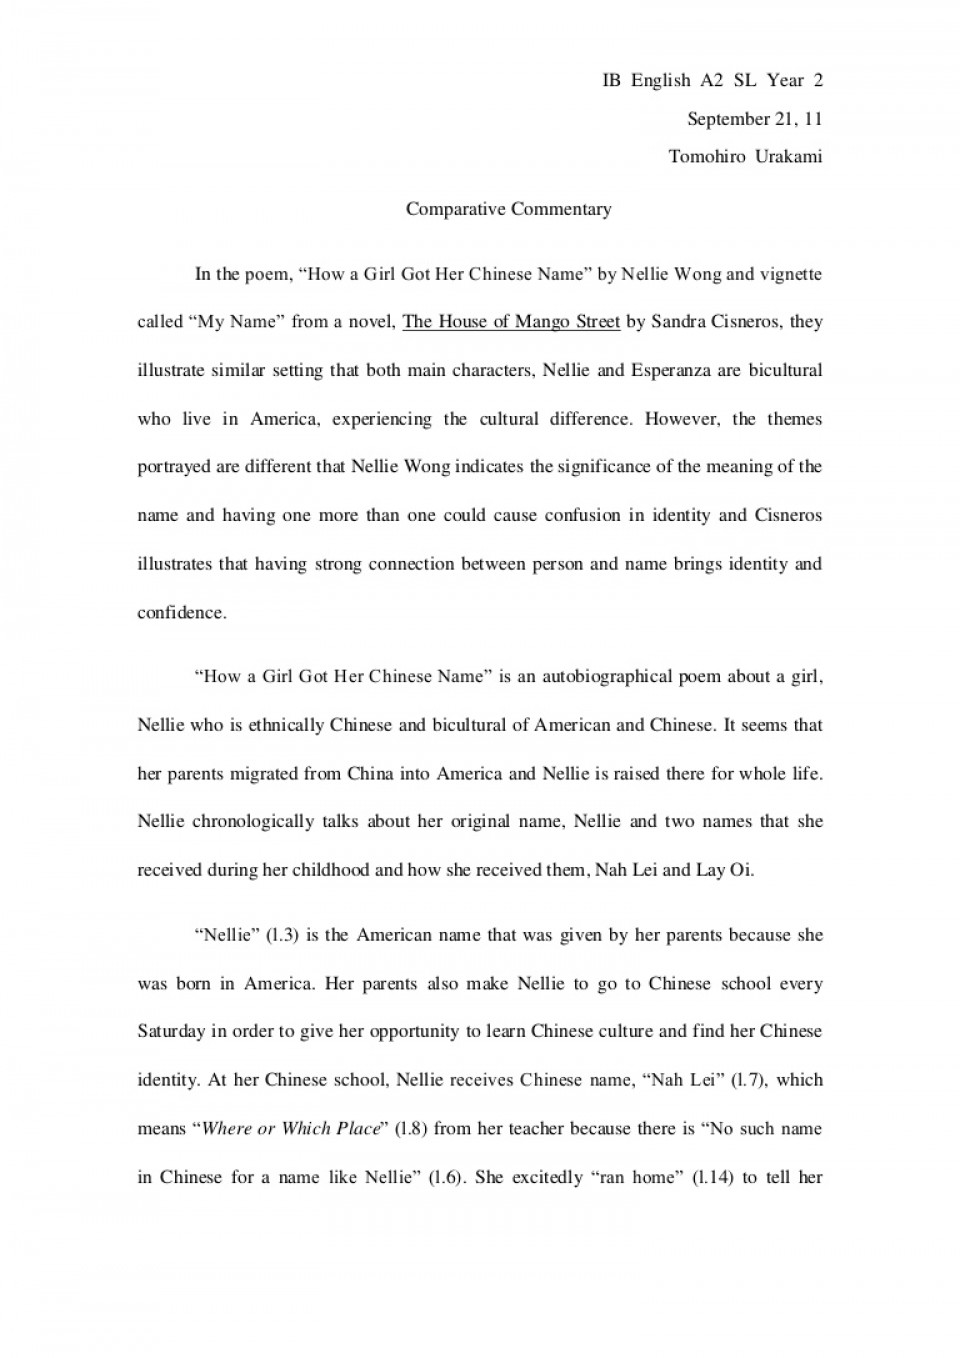 007 Essay Example Comparativeessaydraft Phpapp02 Thumbnail Comparative Beautiful Sample Vce English Introduction Template 960